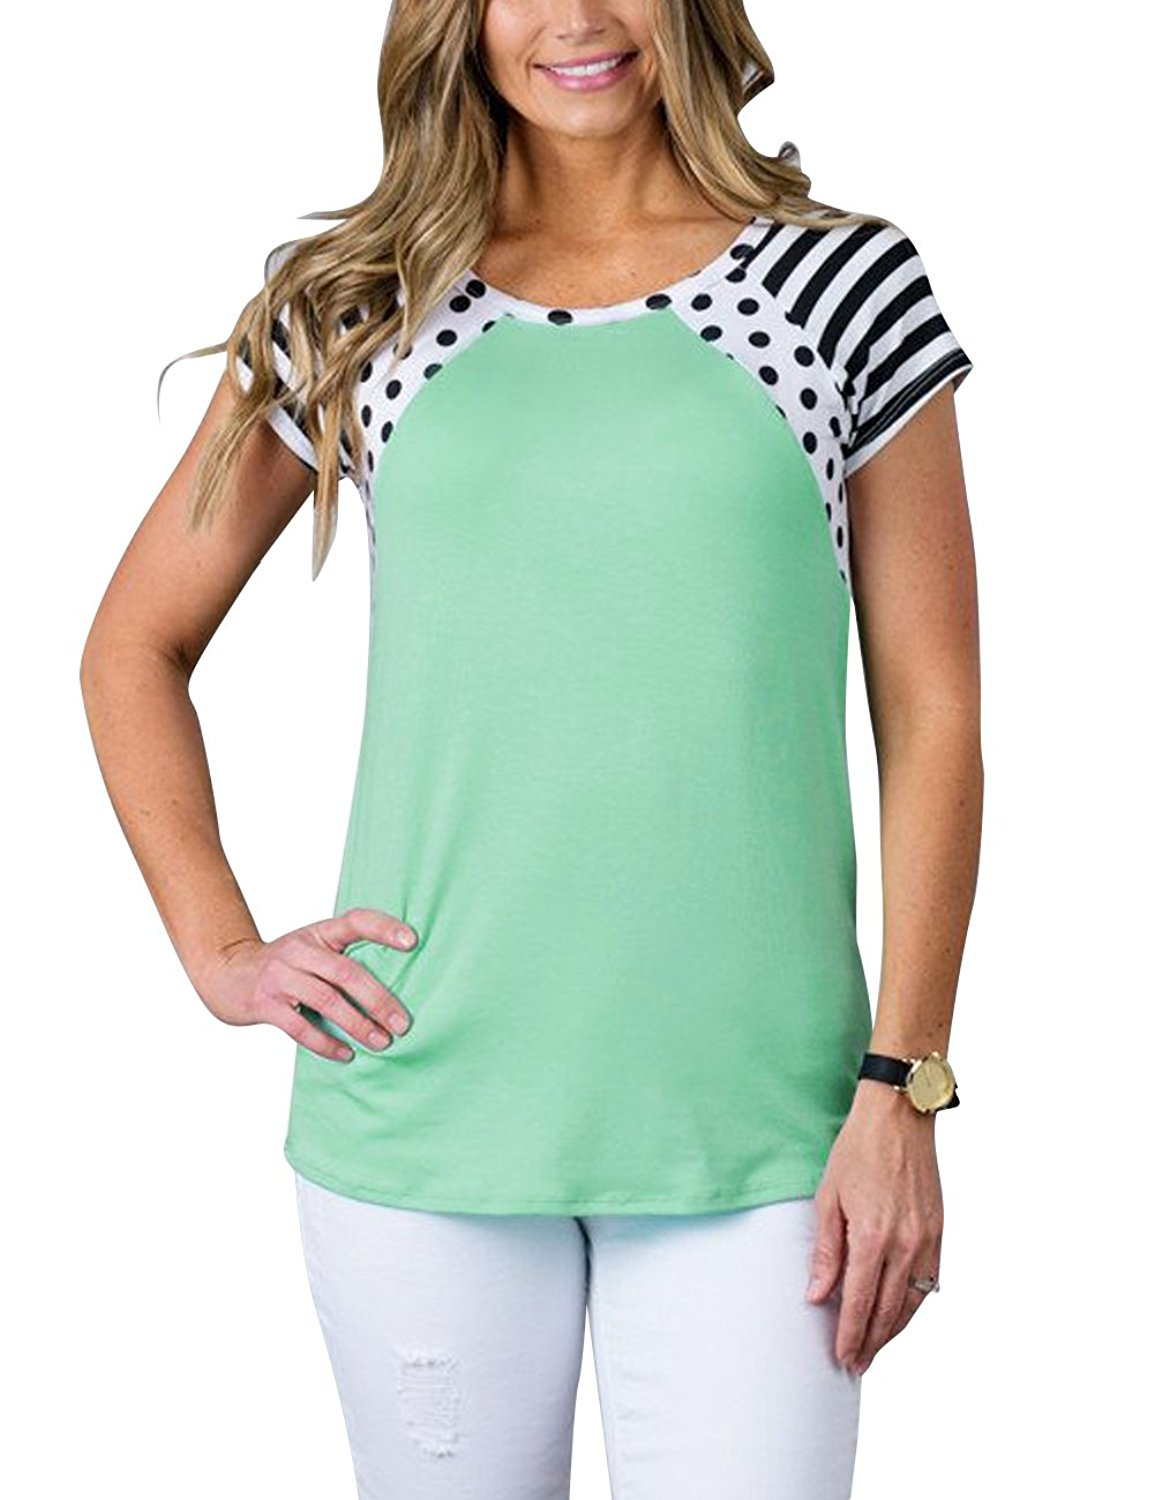 MEROKEETY Women's Polka Dots Shirt Striped 3/4 Sleeve Casual Scoop Neck Tops Tee